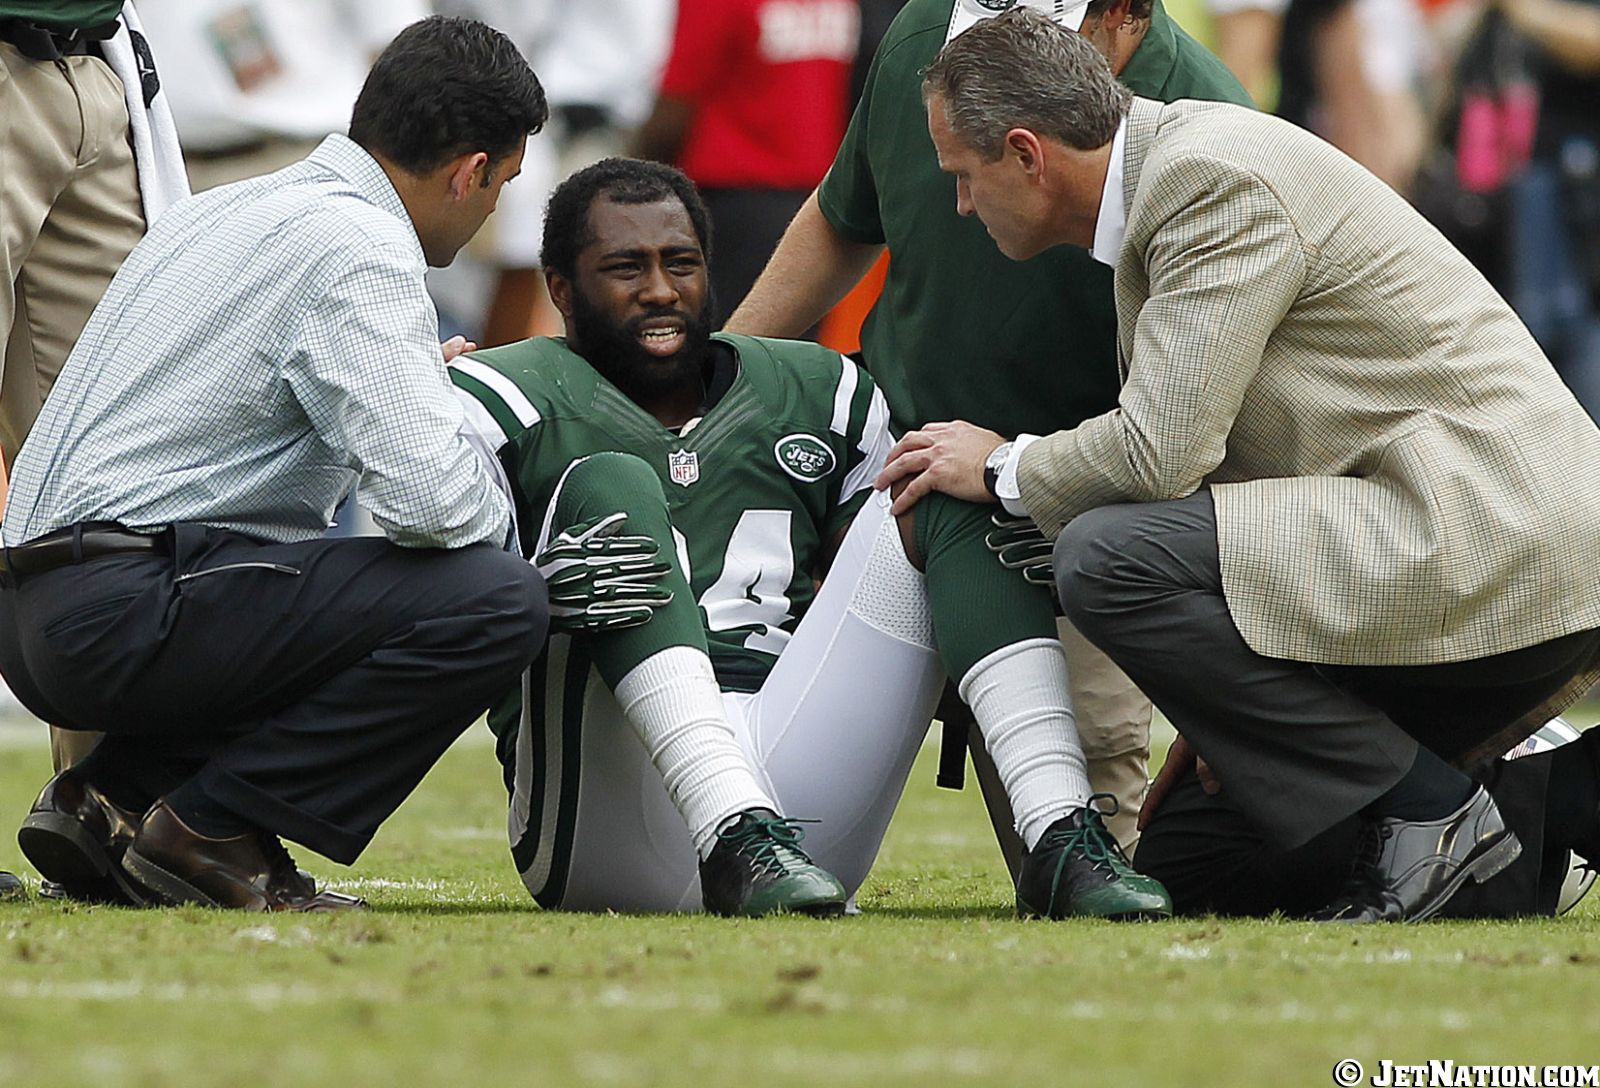 Jets Grant Buccaneers Permission To Give Revis Physical Setting Up Trade